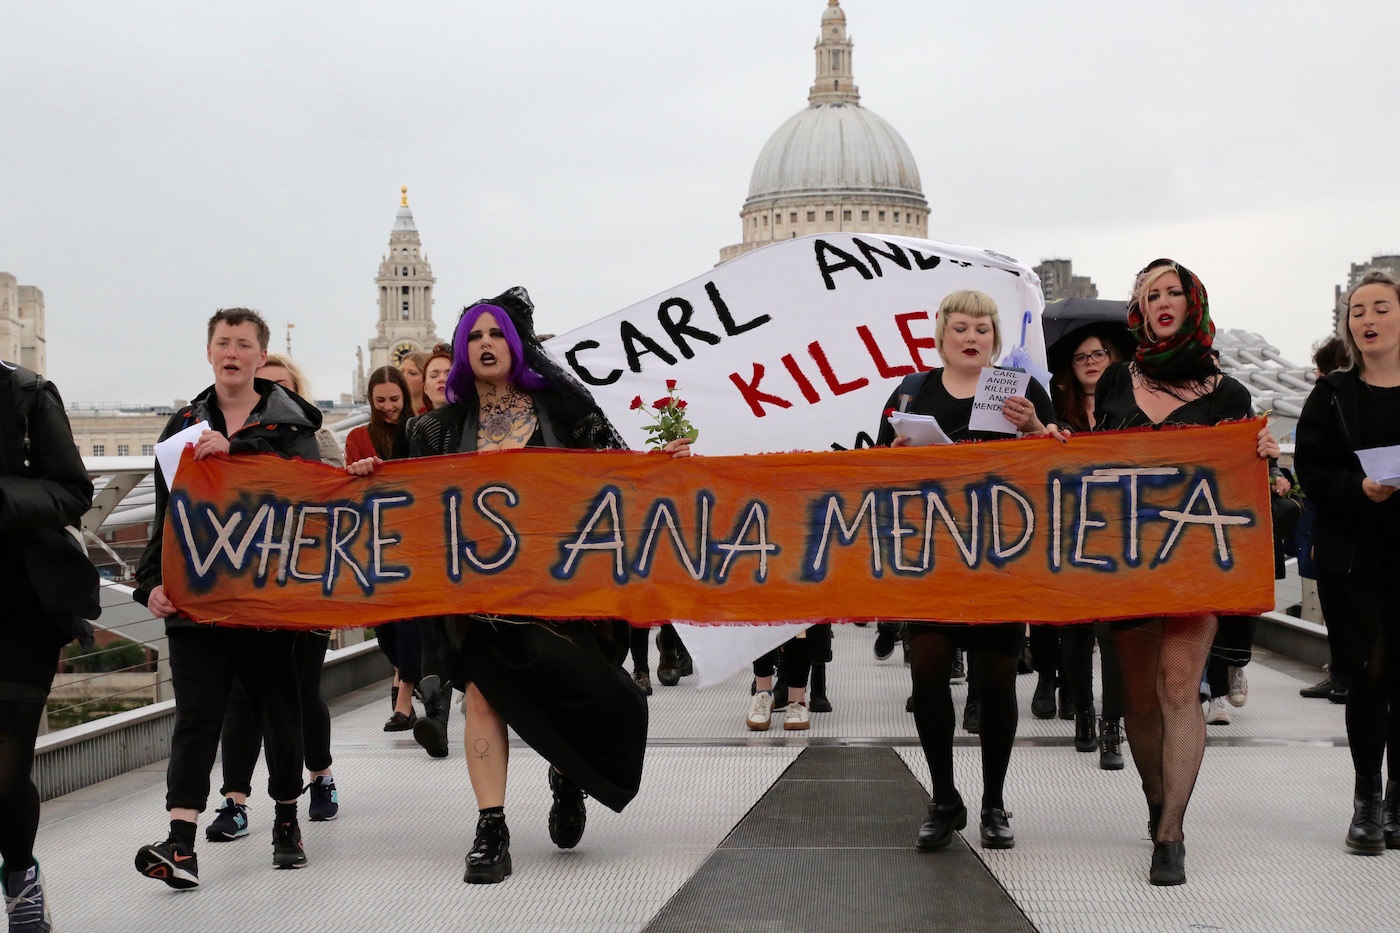 Protesters crossing Millennium Bridge en route to Tate Modern (all photos by and courtesy Charlotte Bell)